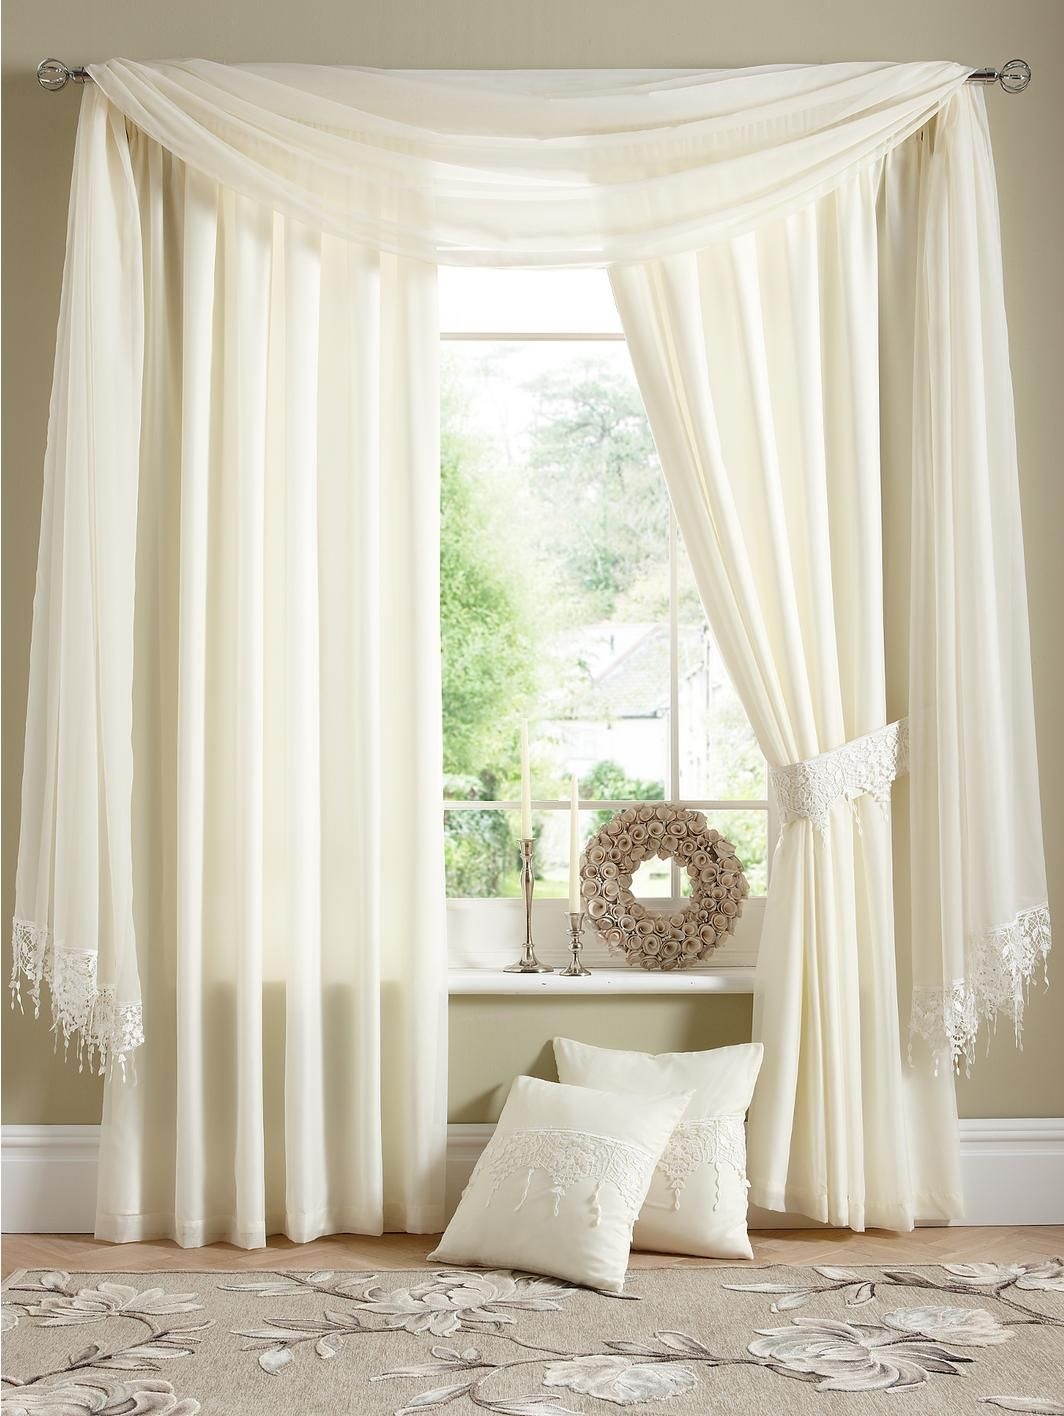 Wisteria Lined Voile Curtains Buy 1 Get 1 FREE y